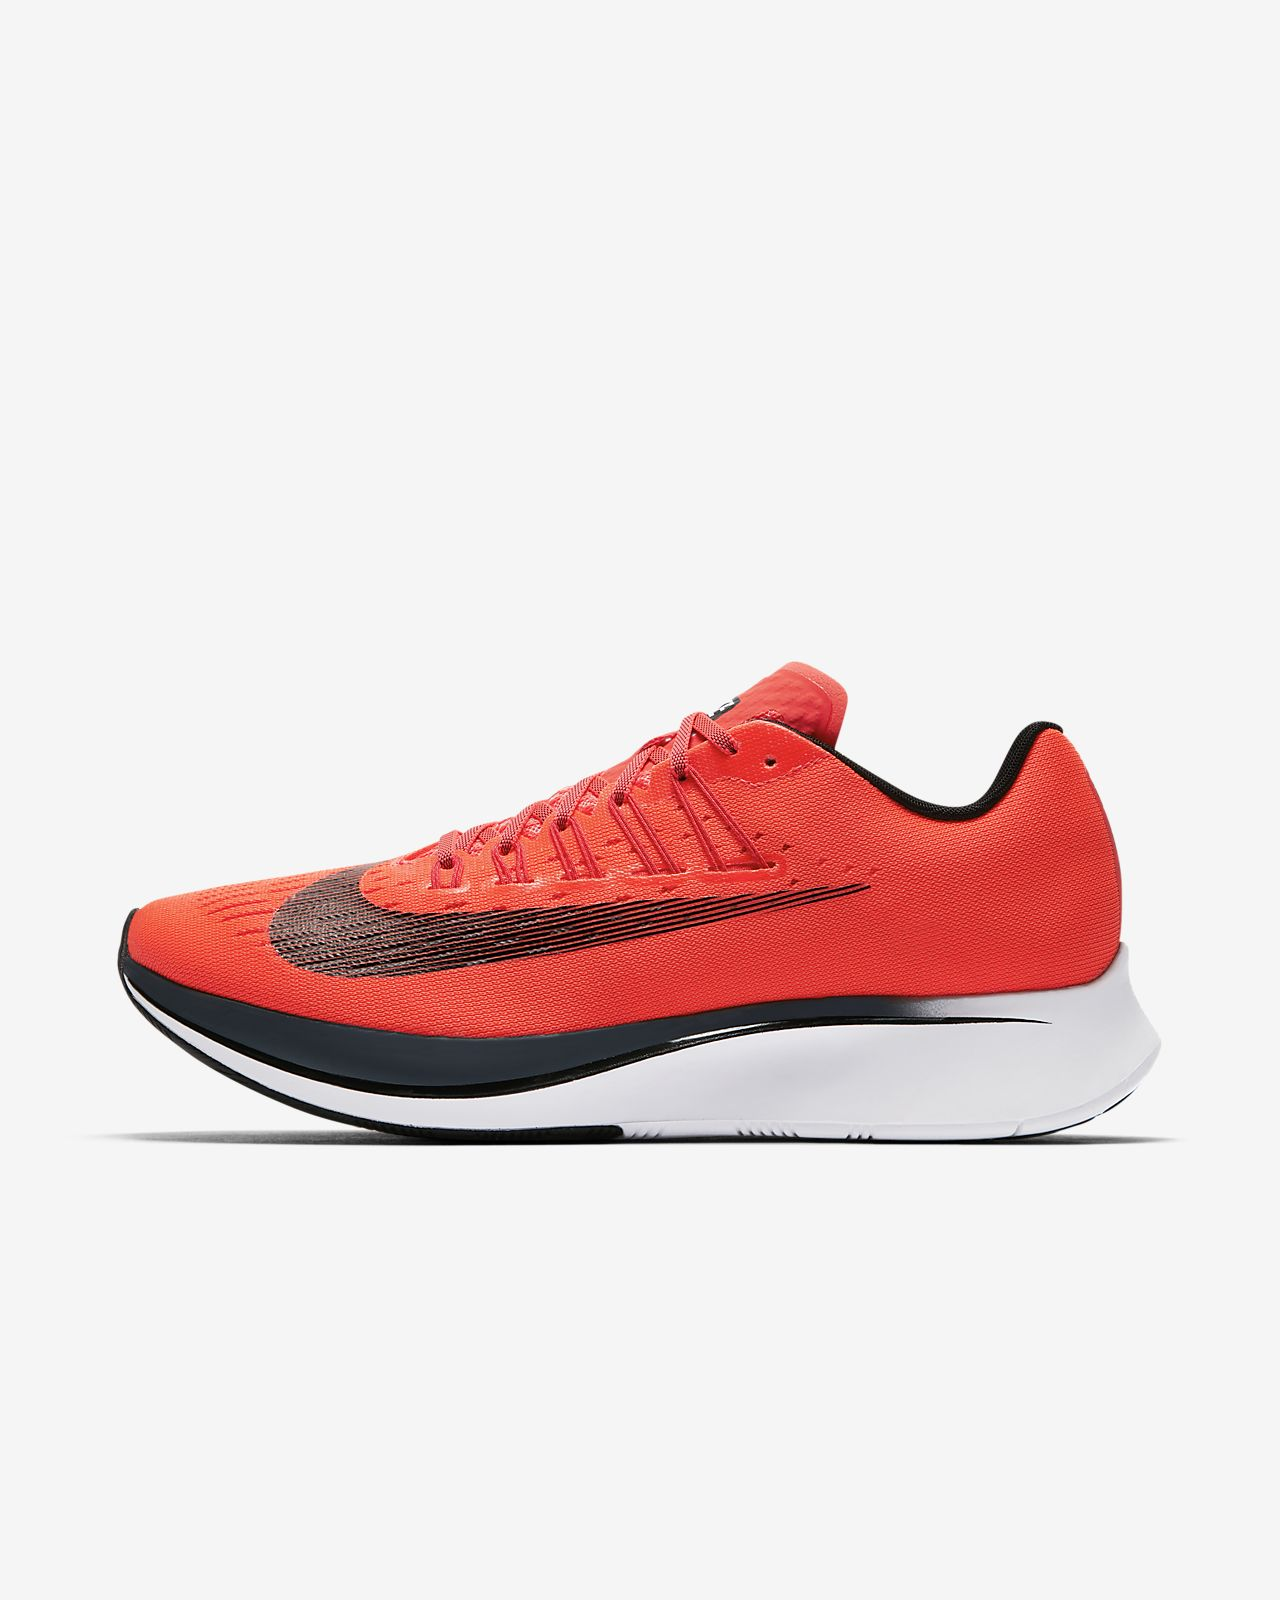 1185bdf2aa26d Nike Zoom Fly Men s Running Shoe. Nike.com CA